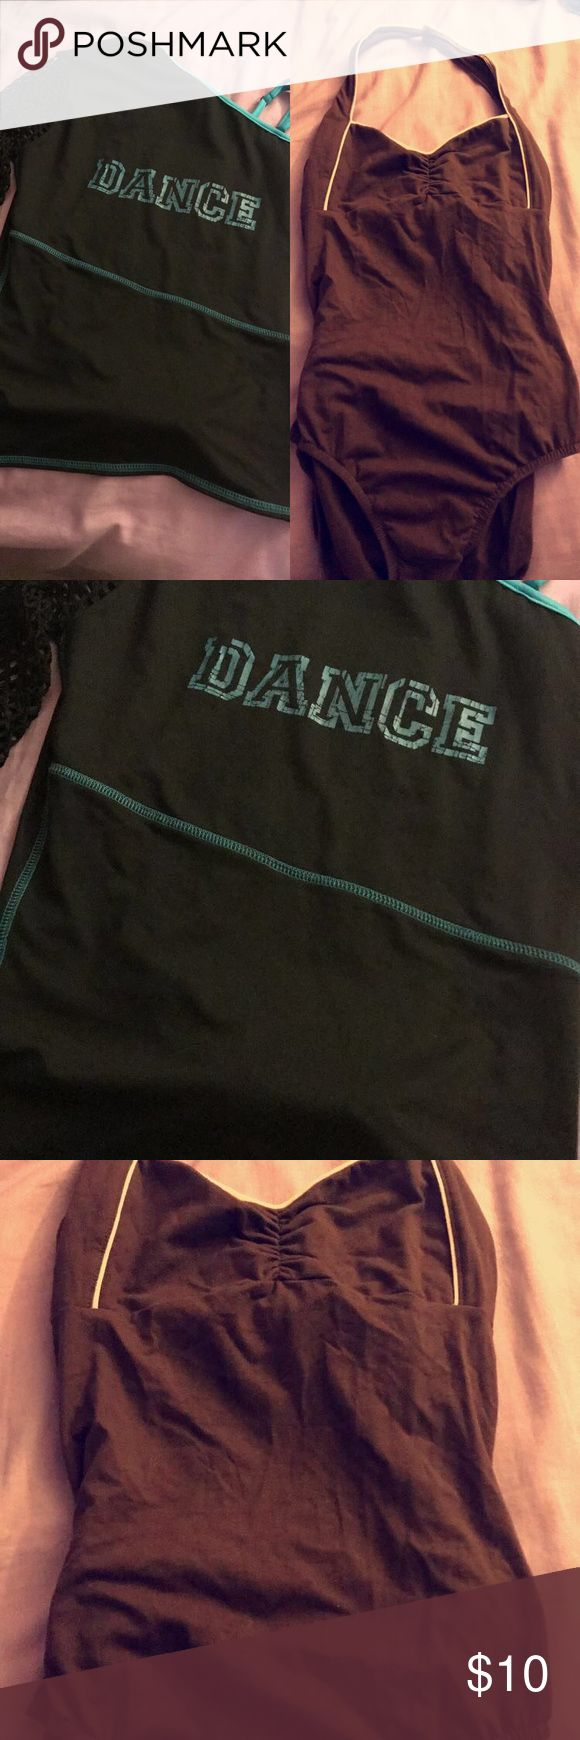 Dance Bundle! brown and pink leotard & Dance top Brown and pink size large halter leotard. Leo dance wear leotard with open back. Worn a couple of times. One Shoulder with fish net sleeve dance top black and turquoise. Size extra large. Never worn. Leo's Dance wear Other